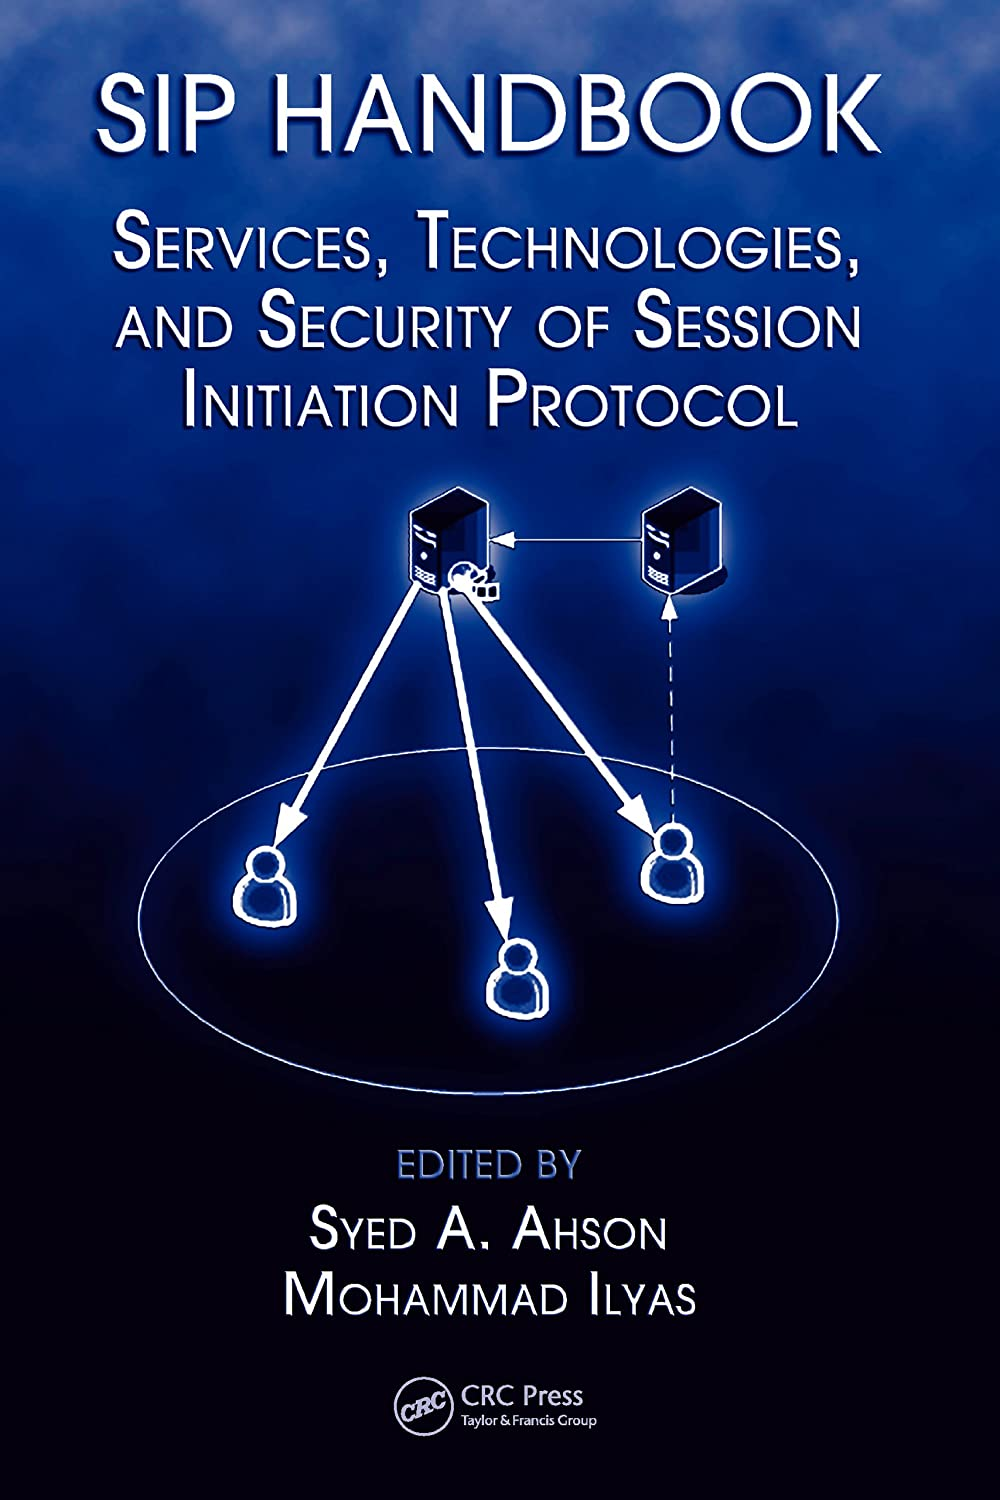 sip session initiation protocol tutorial